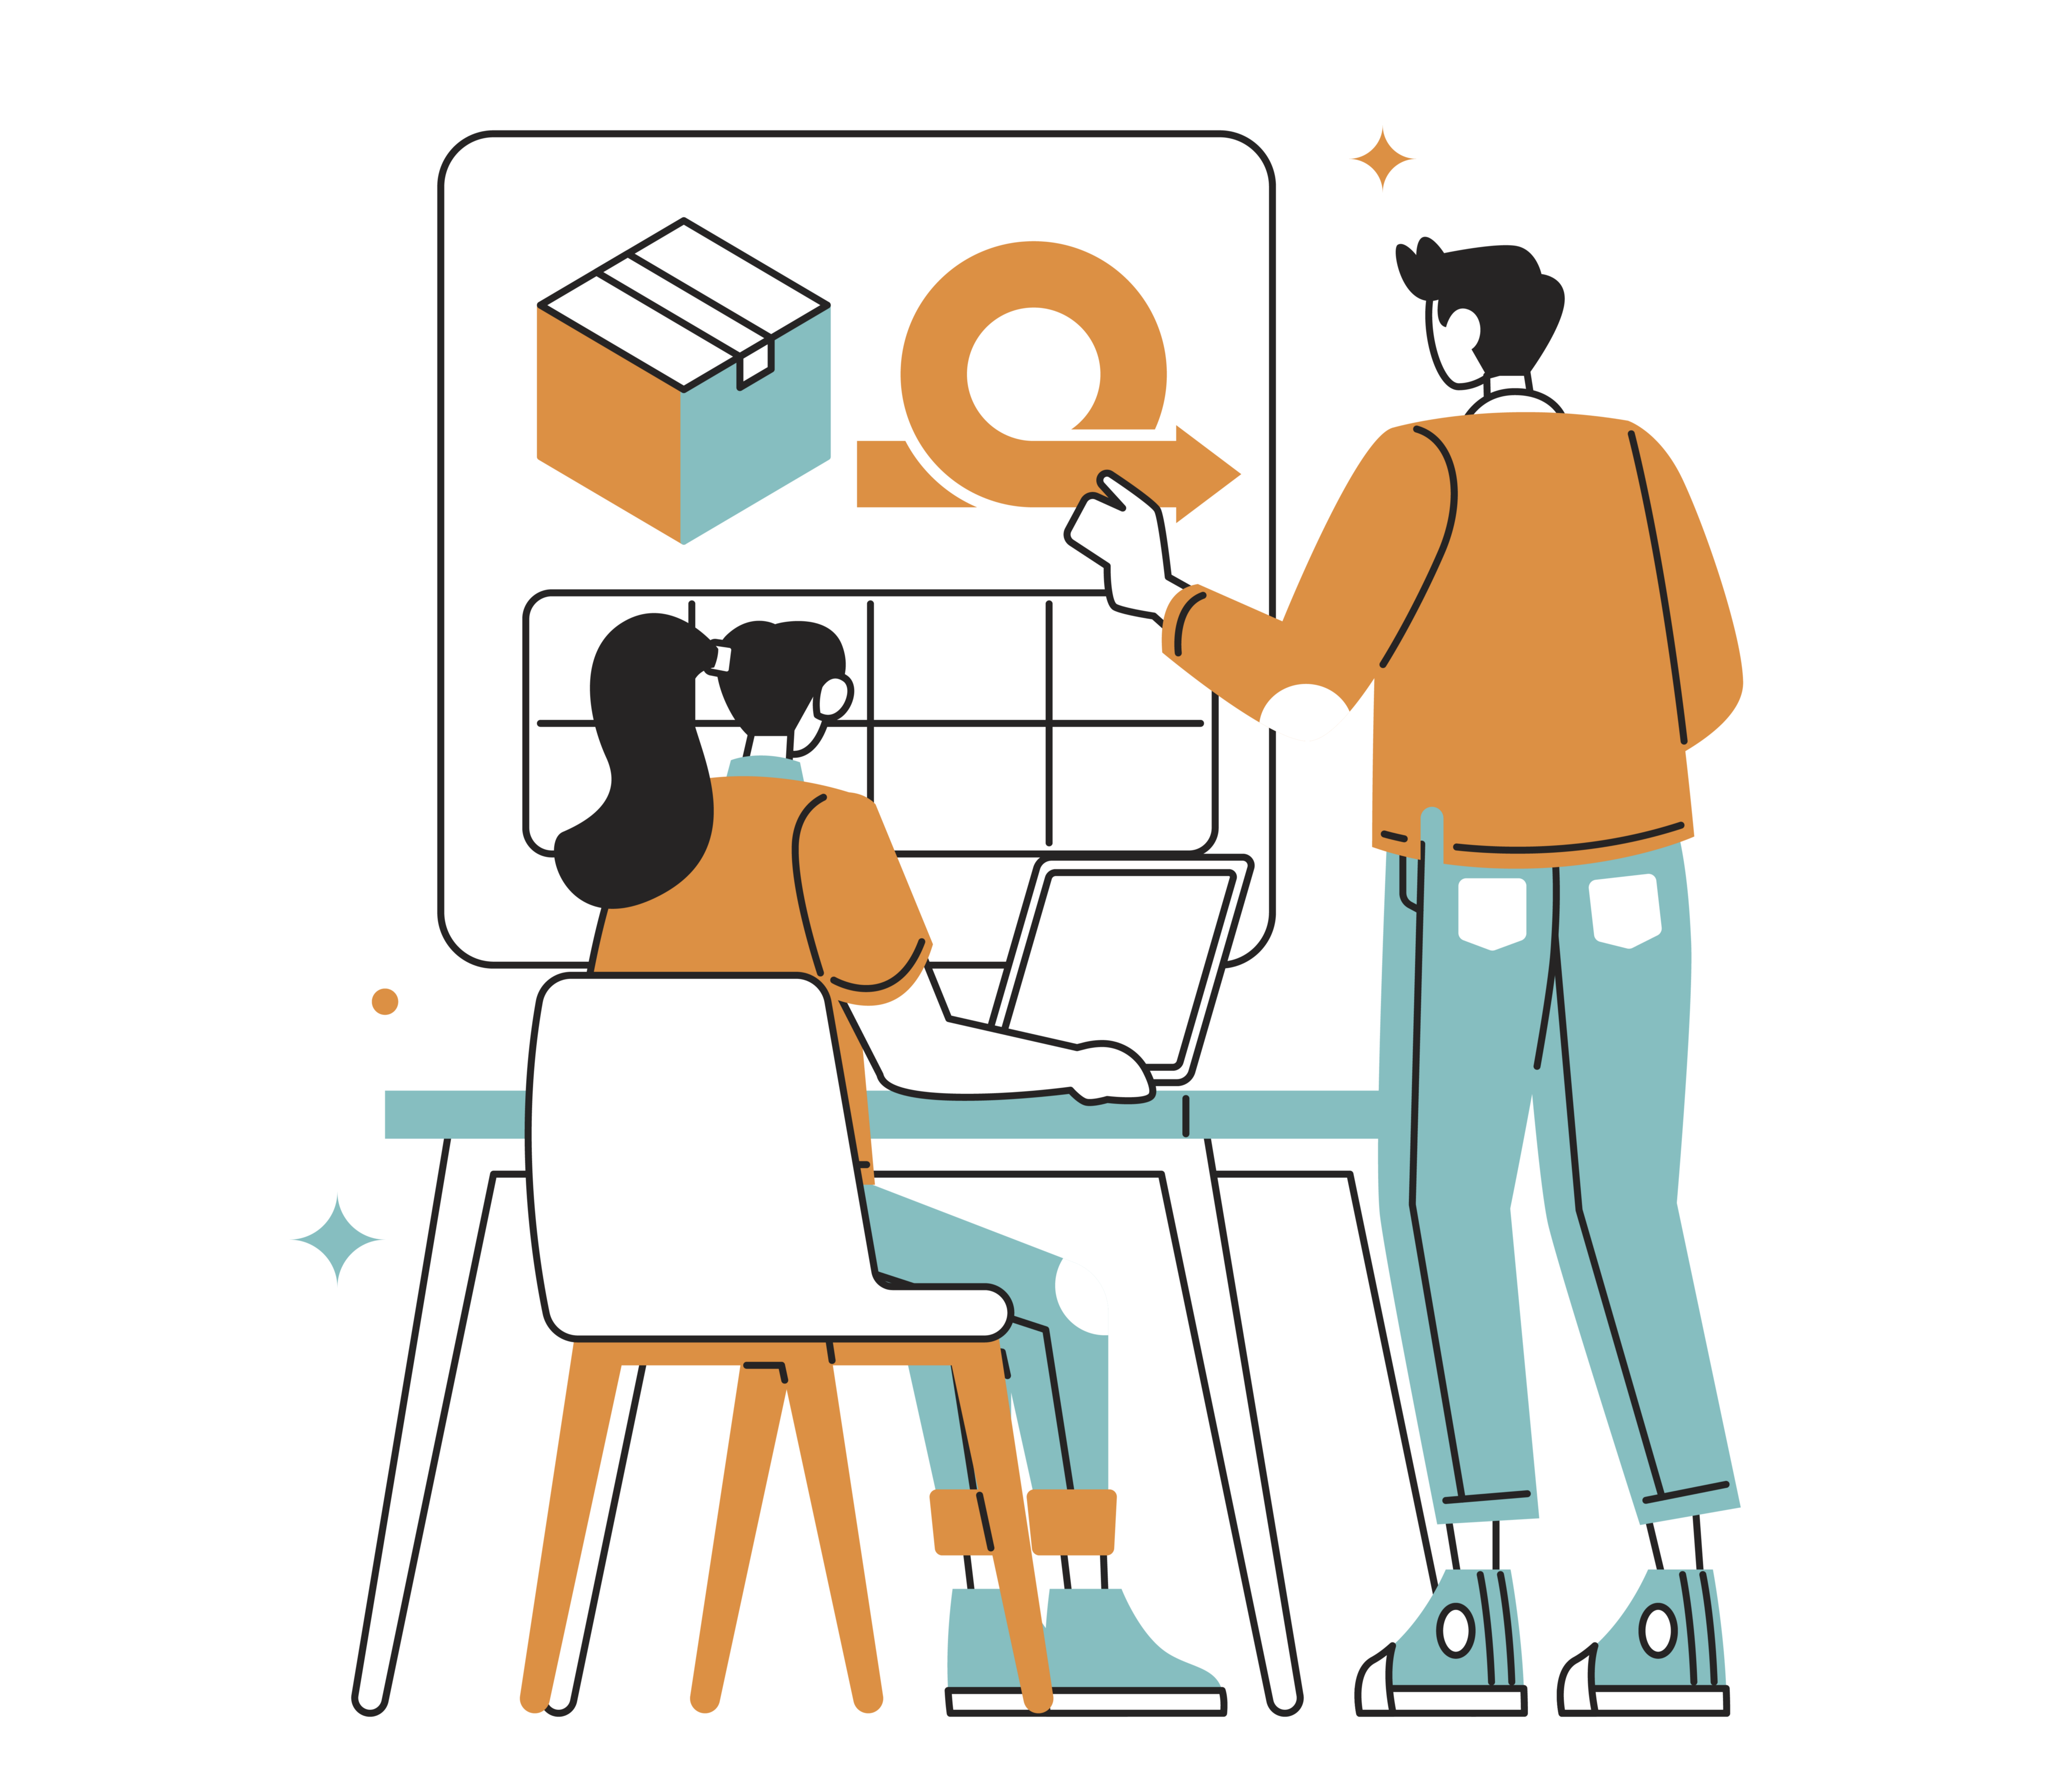 An illustration depicting a team of coworkers planning on a project